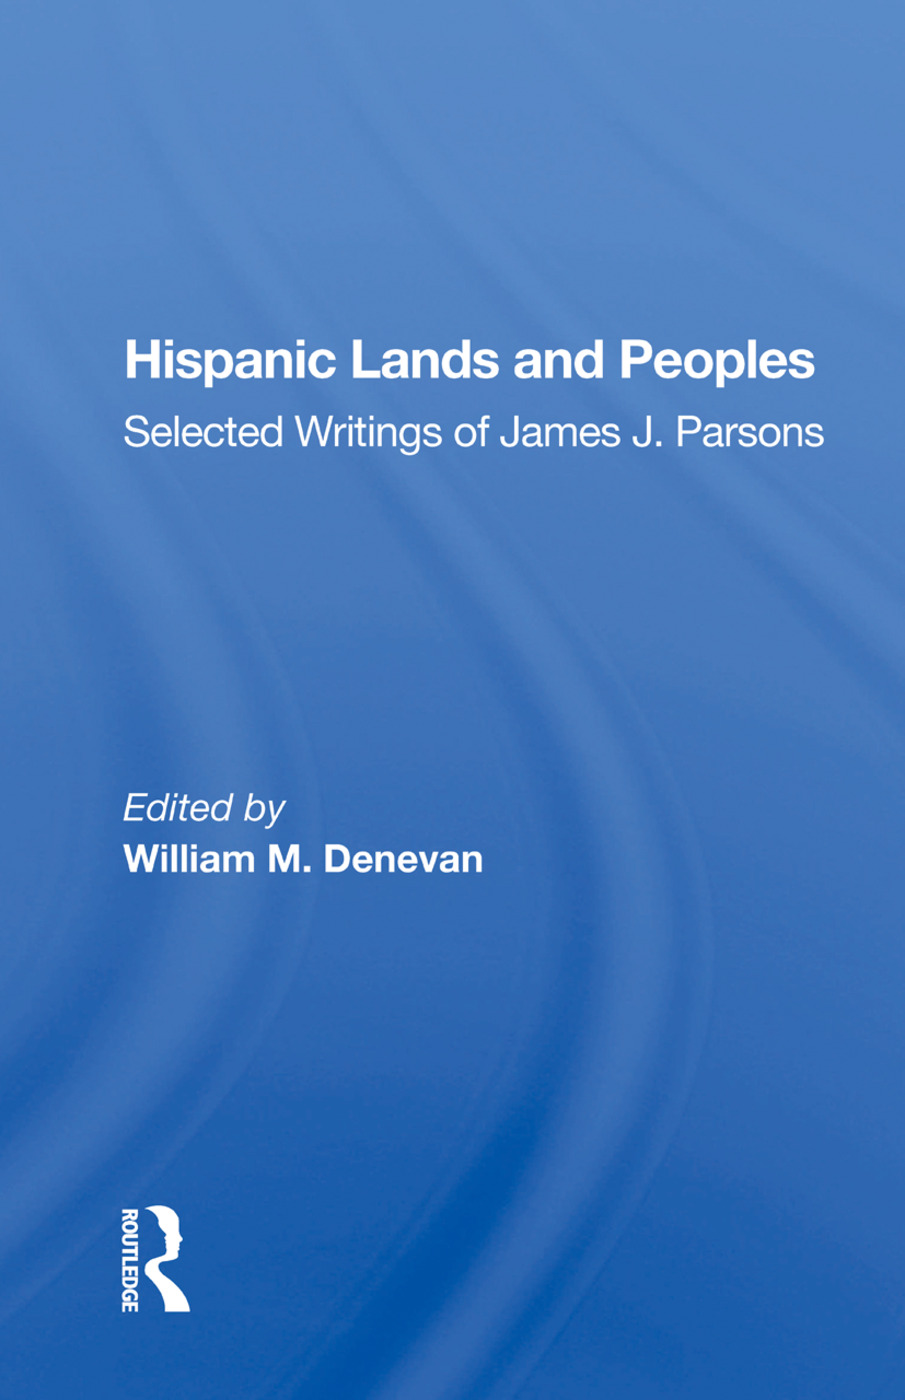 Hispanic Lands and Peoples: Selected Writings of James J. Parsons book cover